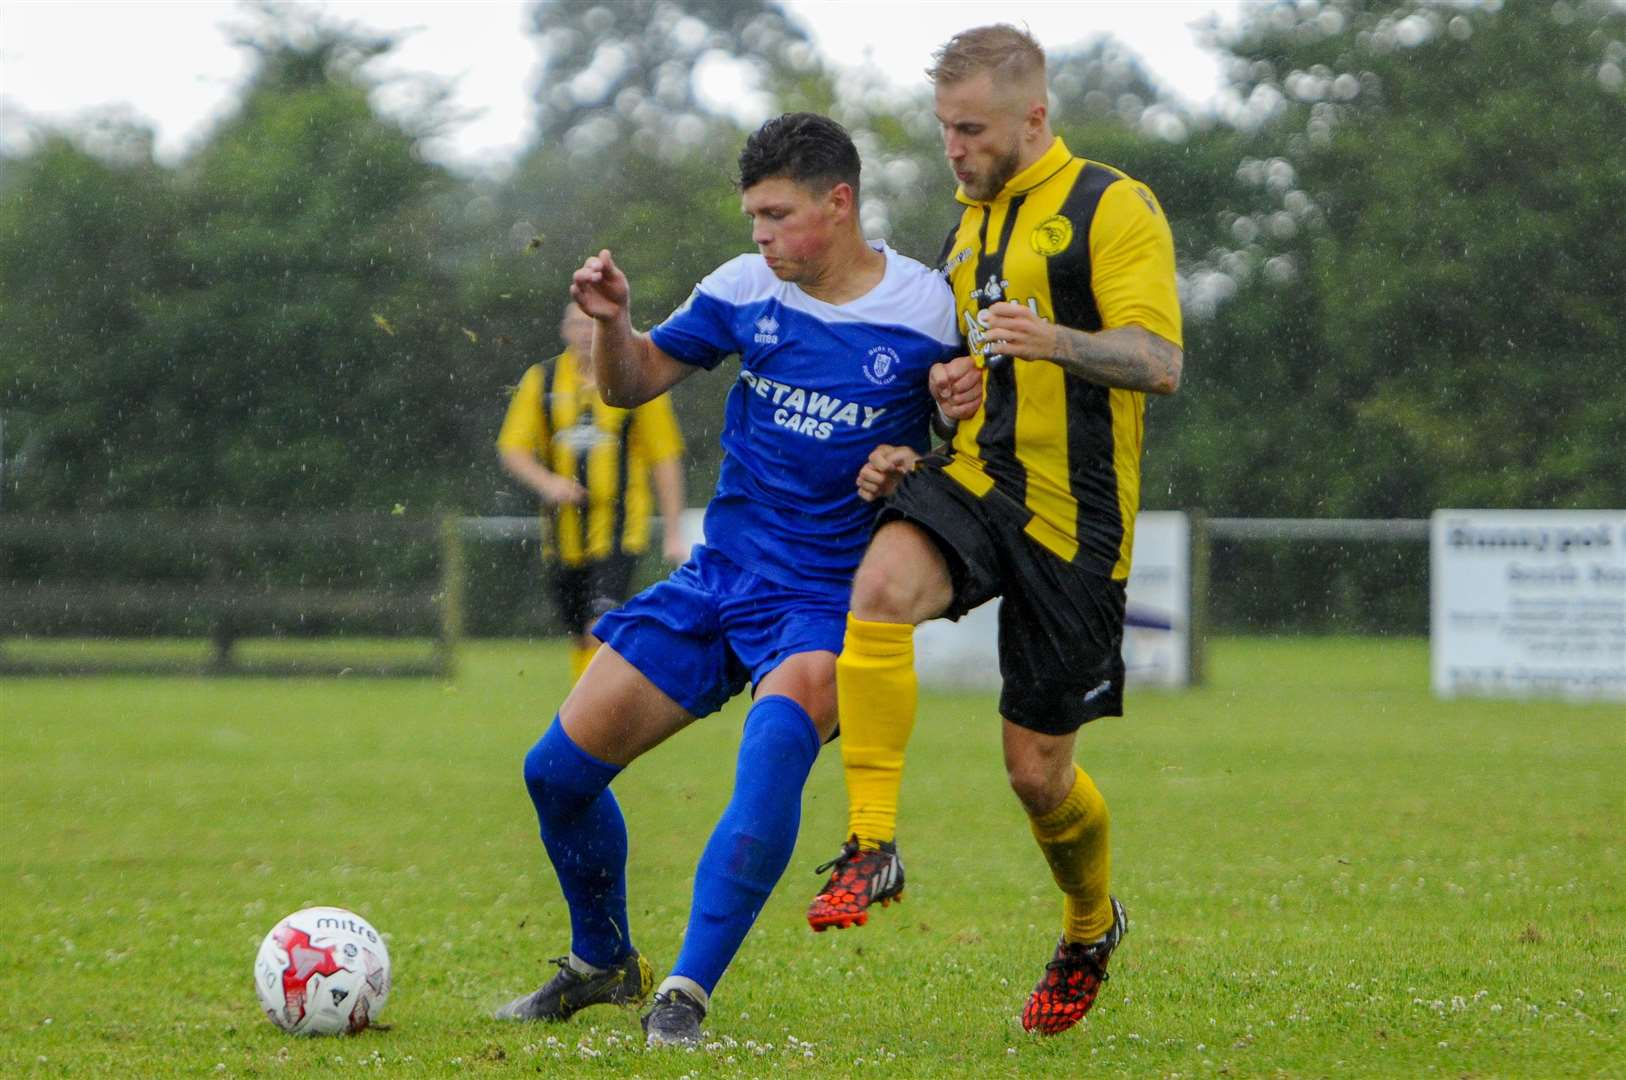 Ross Crane in action for Bury Town at Debenham LC Picture: Mark Bullimore